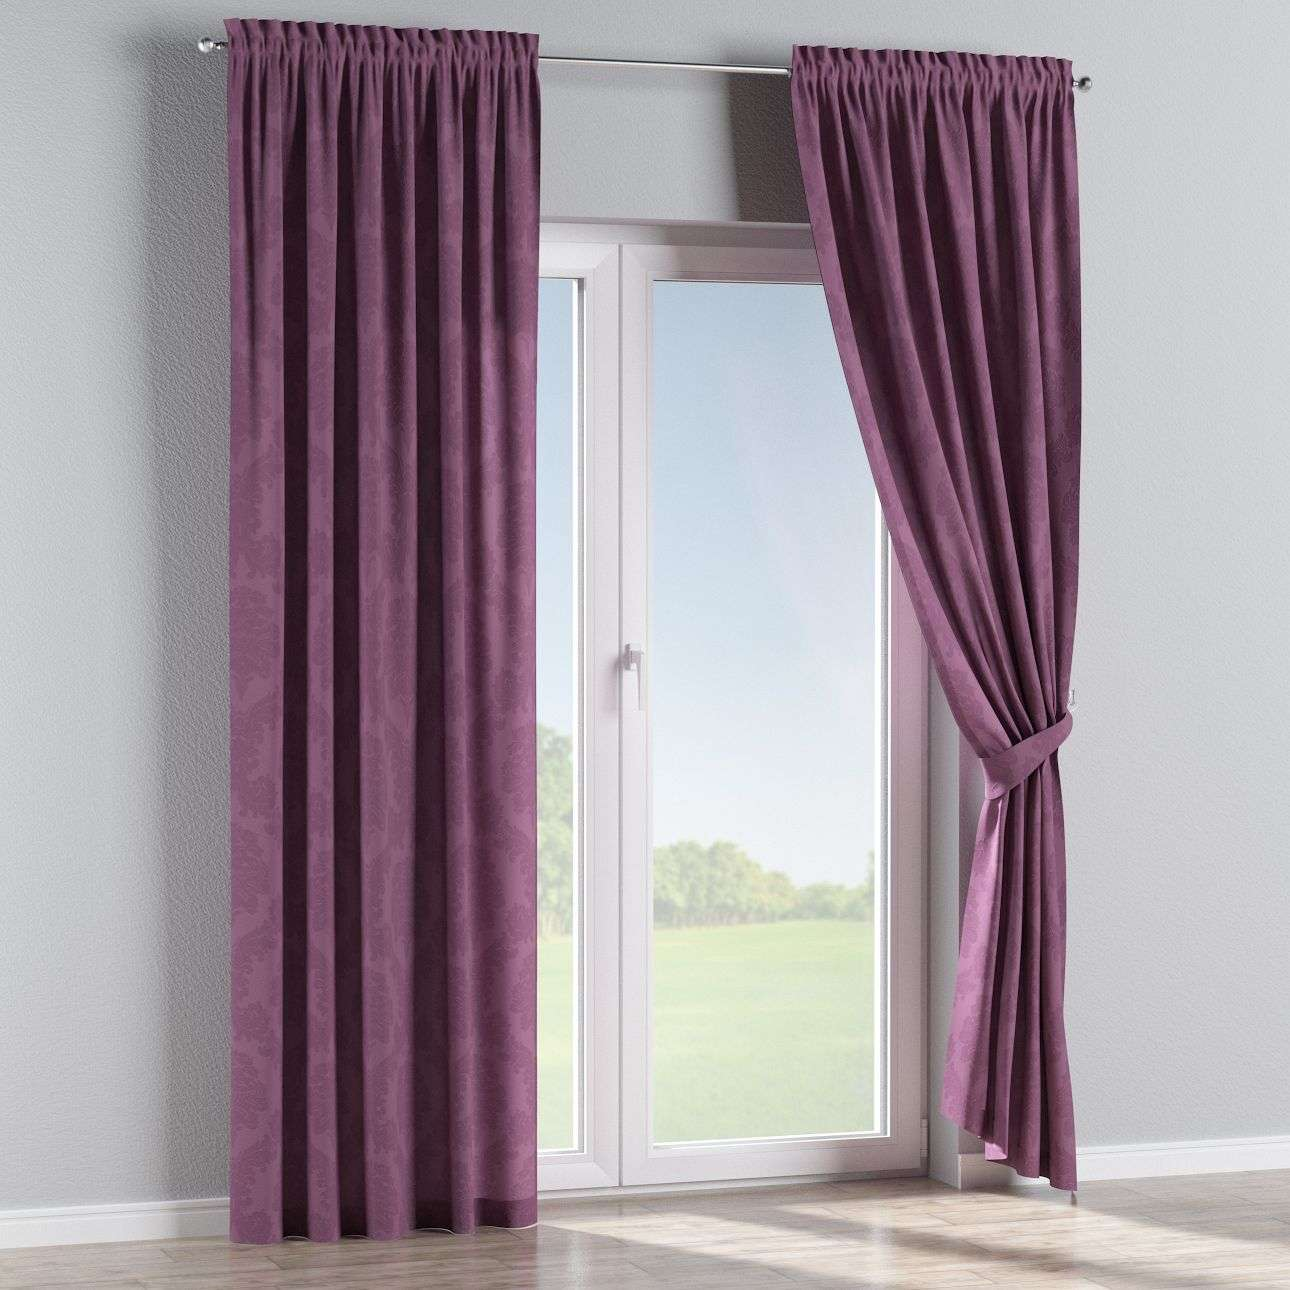 Slot and frill curtains 130 × 260 cm (51 × 102 inch) in collection Damasco, fabric: 613-75